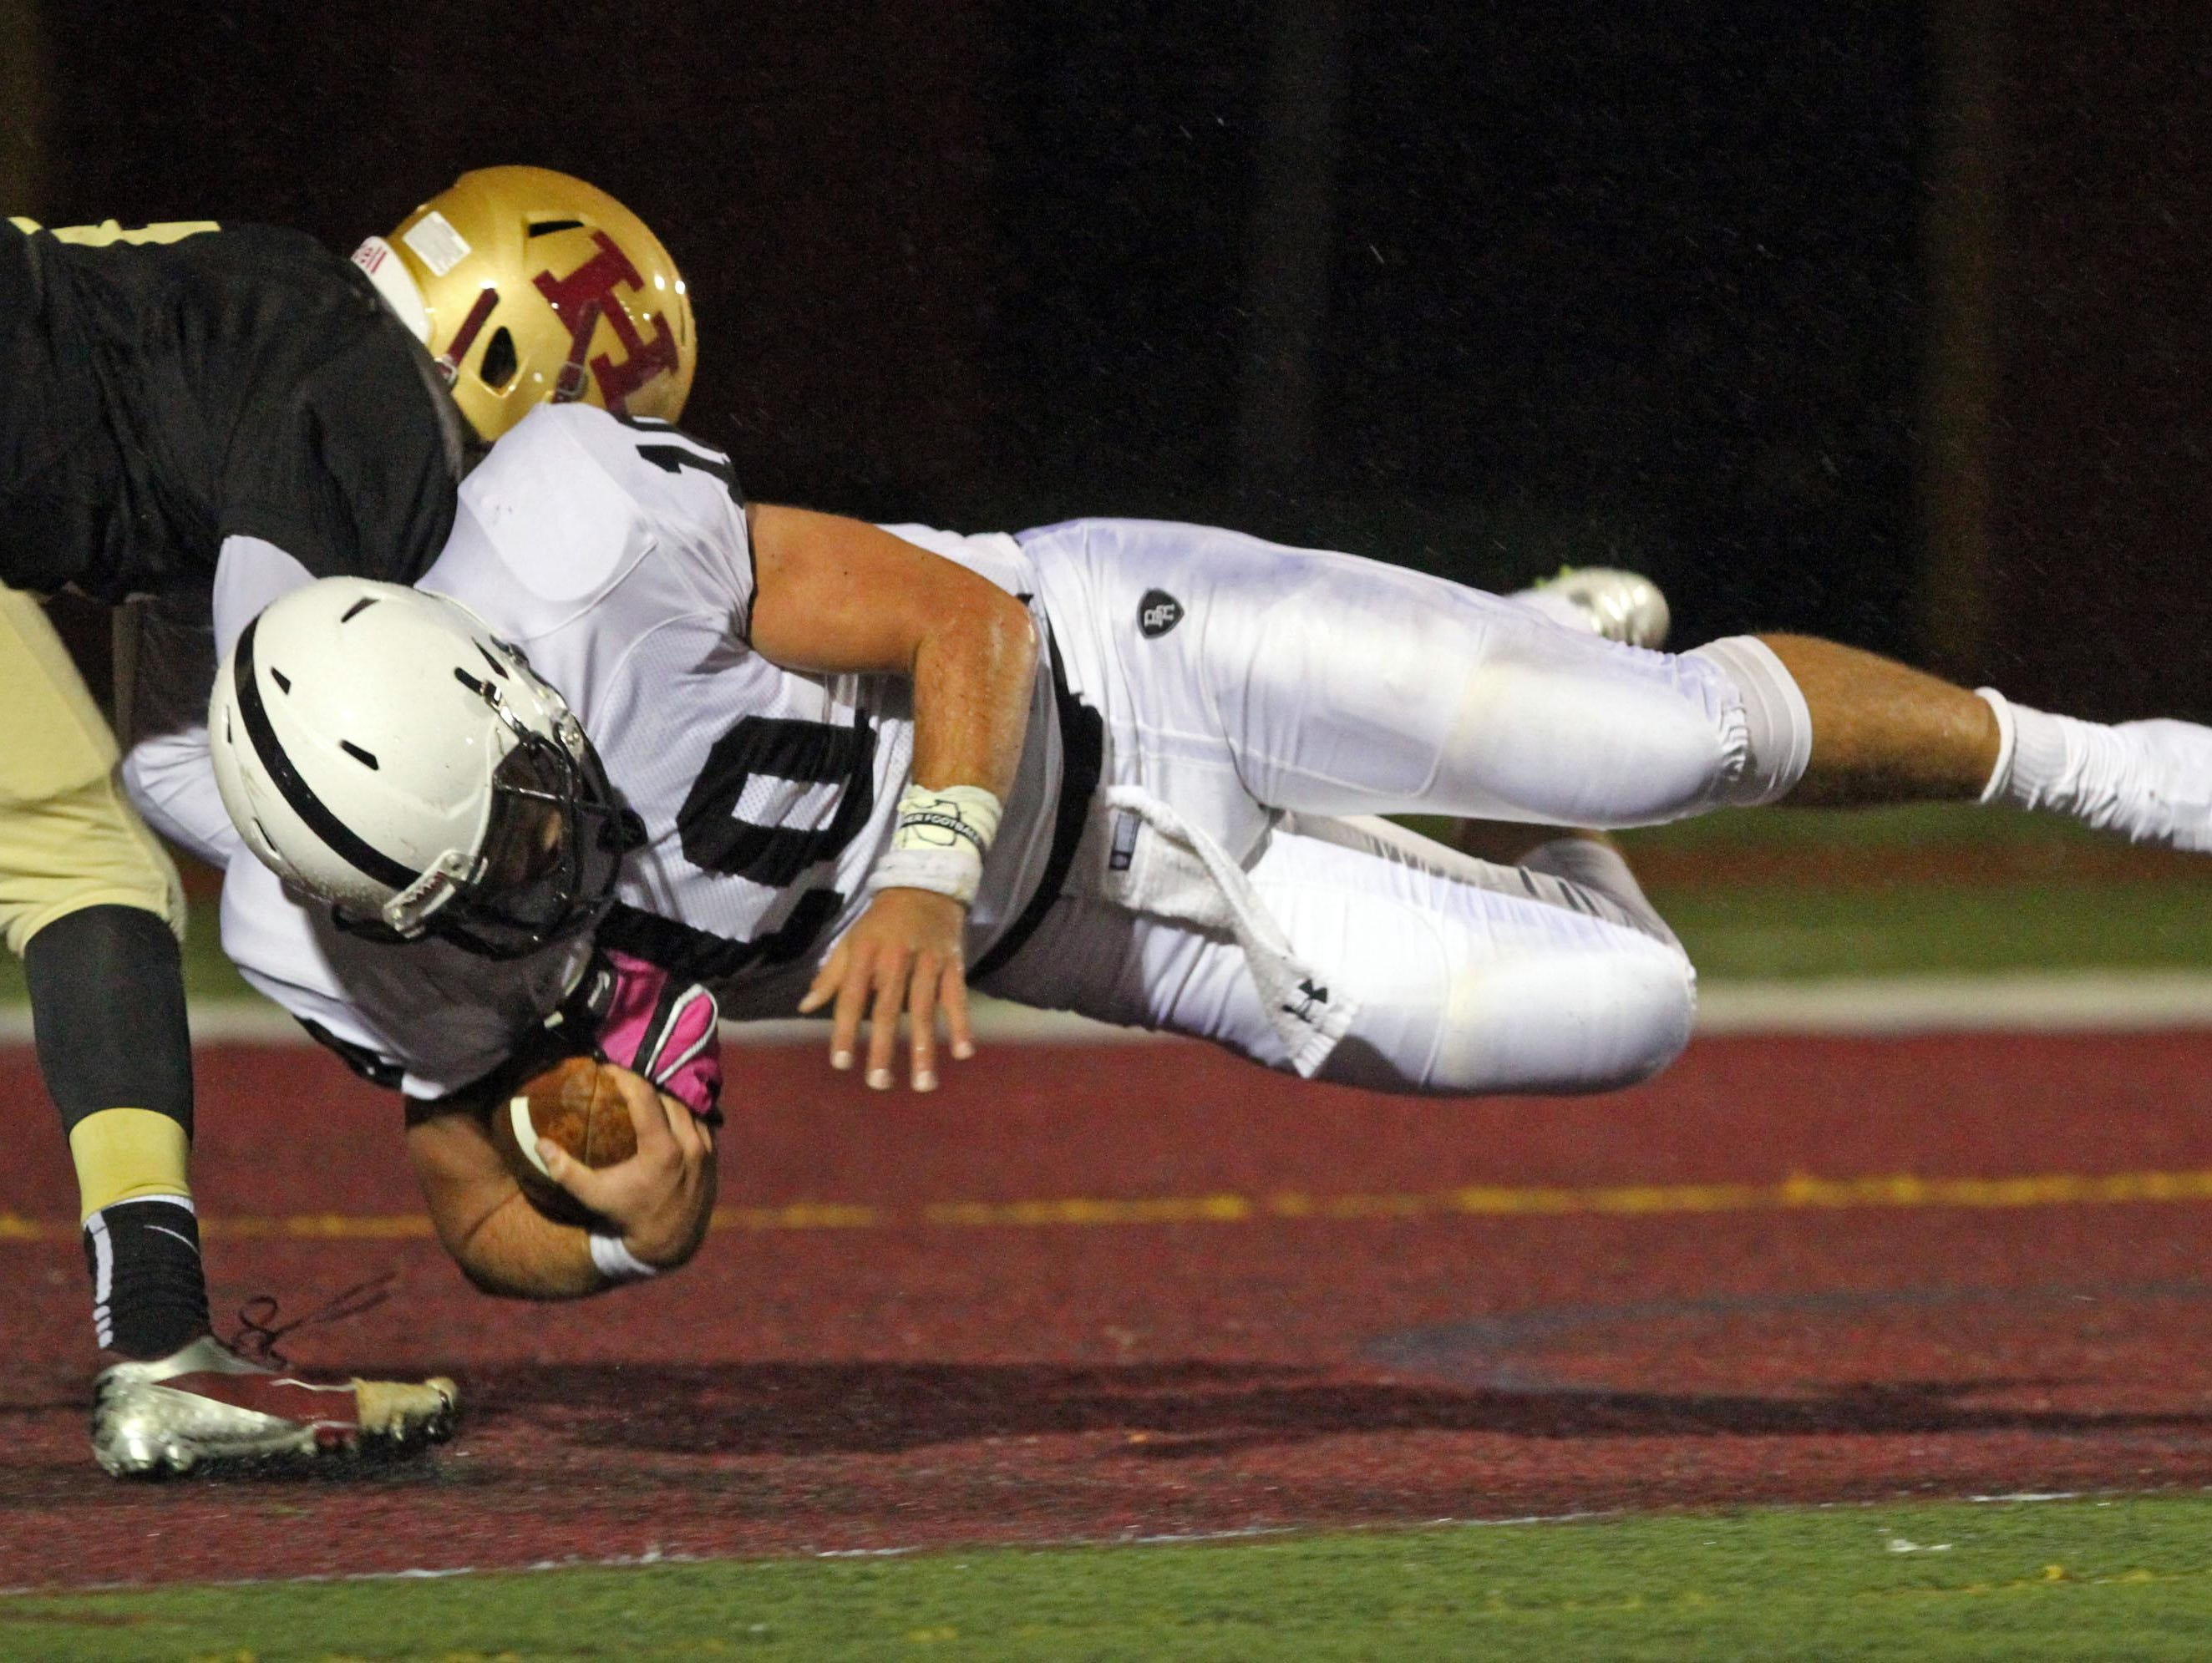 Bridgewater-Raritan quarterback Eric Nickel dives into the end zone to score the first touchdown of a game at the end of the first quarter at Hillsborough on Oct. 6.